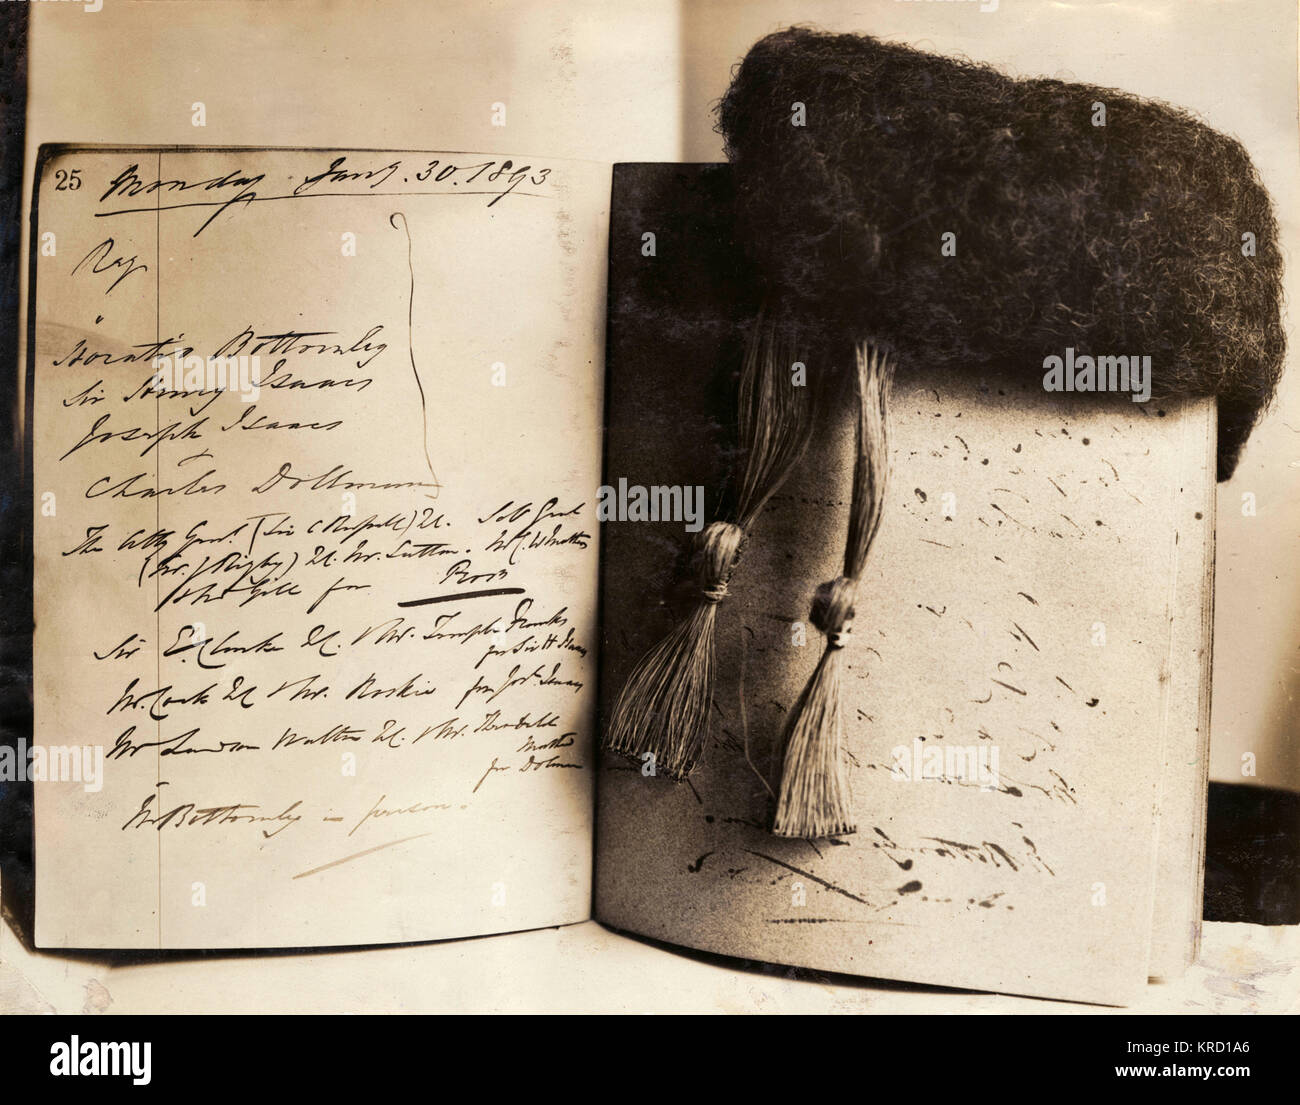 A notebook and wig once belonging to the English Judge, Justice Hawkins (Henry Hawkins, 1st Baron Brampton), given - Stock Image